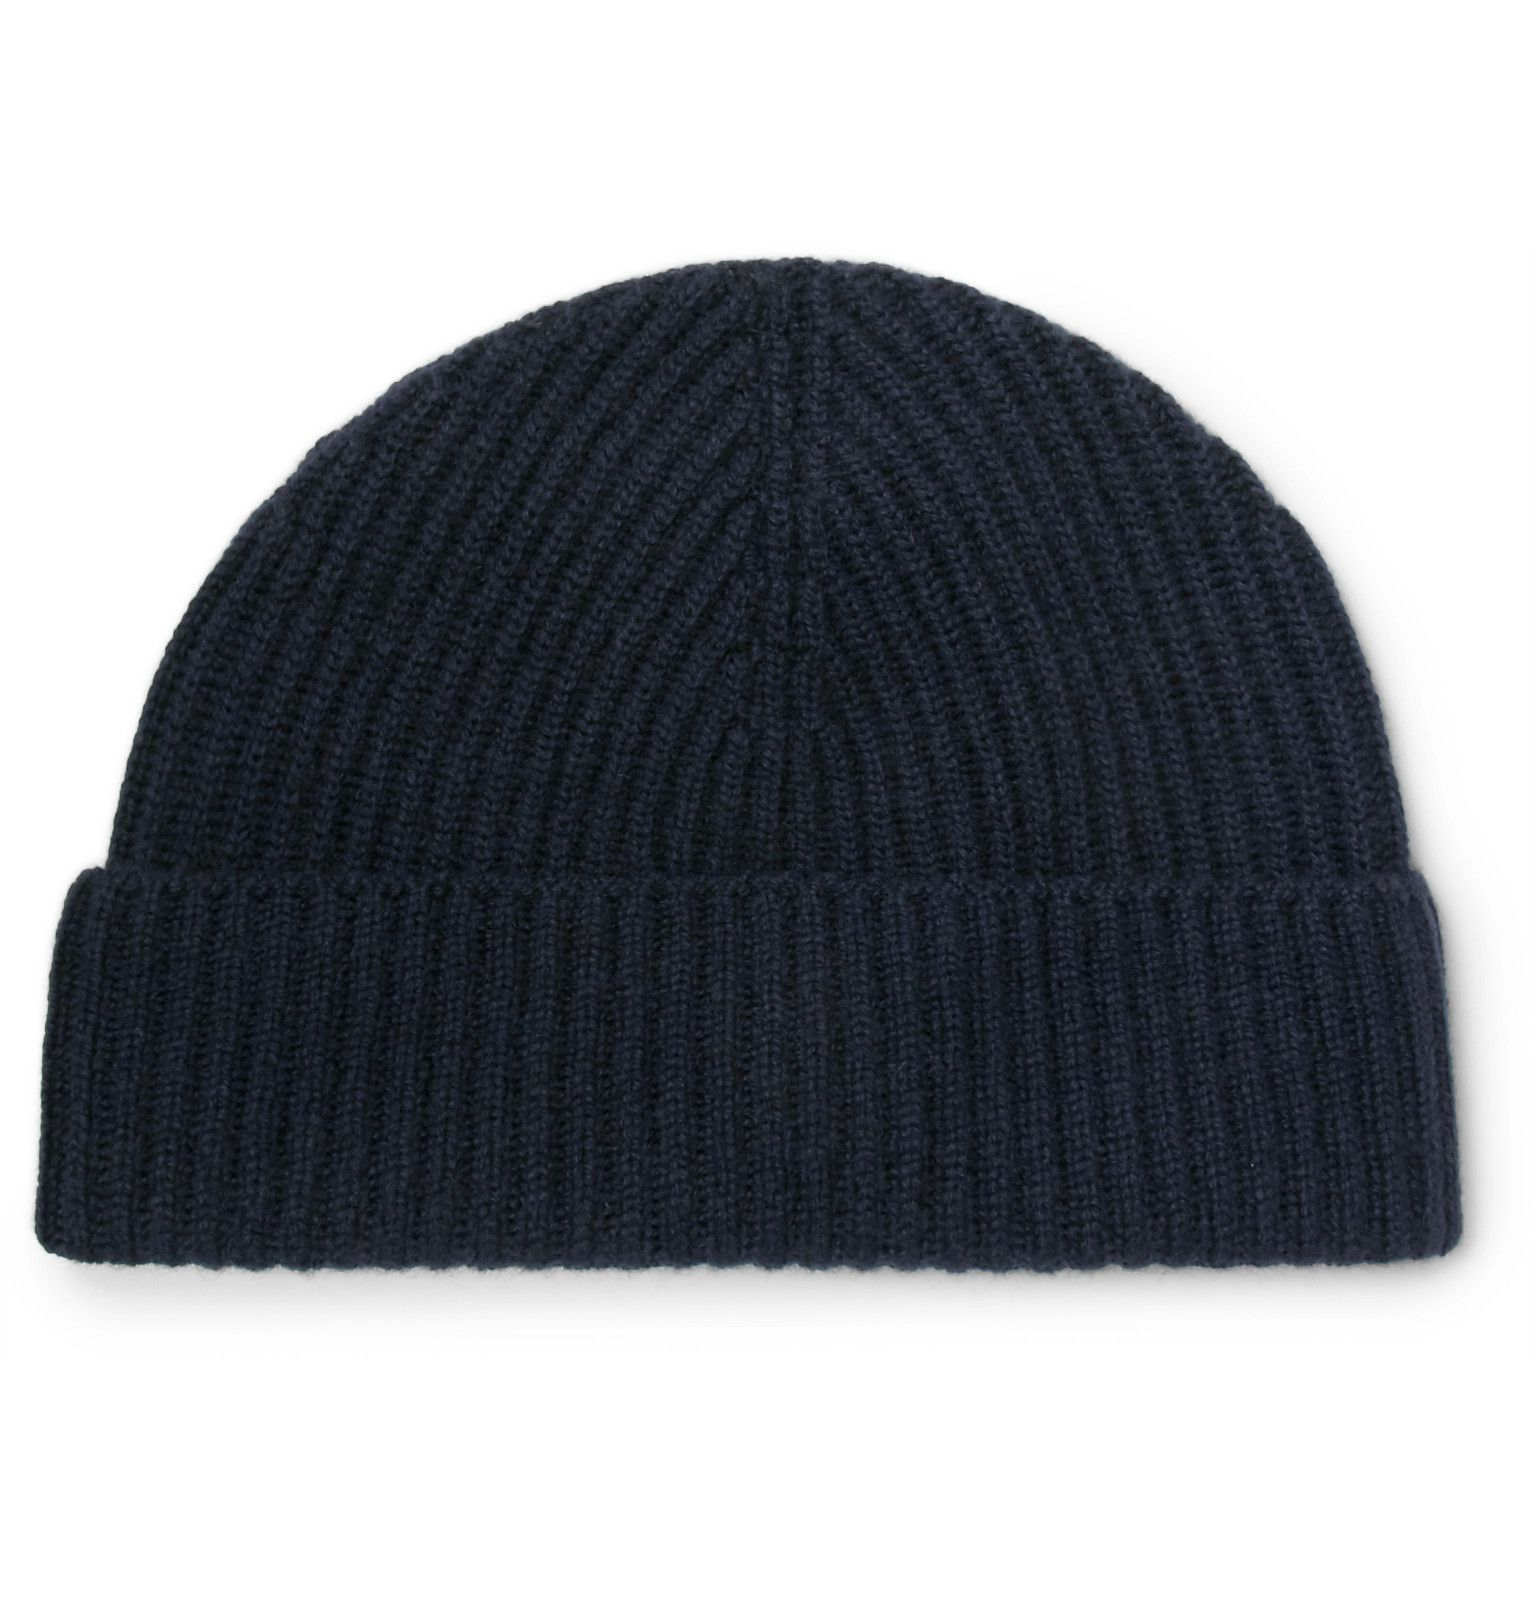 Ribbed Cashmere Beanie Lock & Co Hatters SNFG9HDqgR